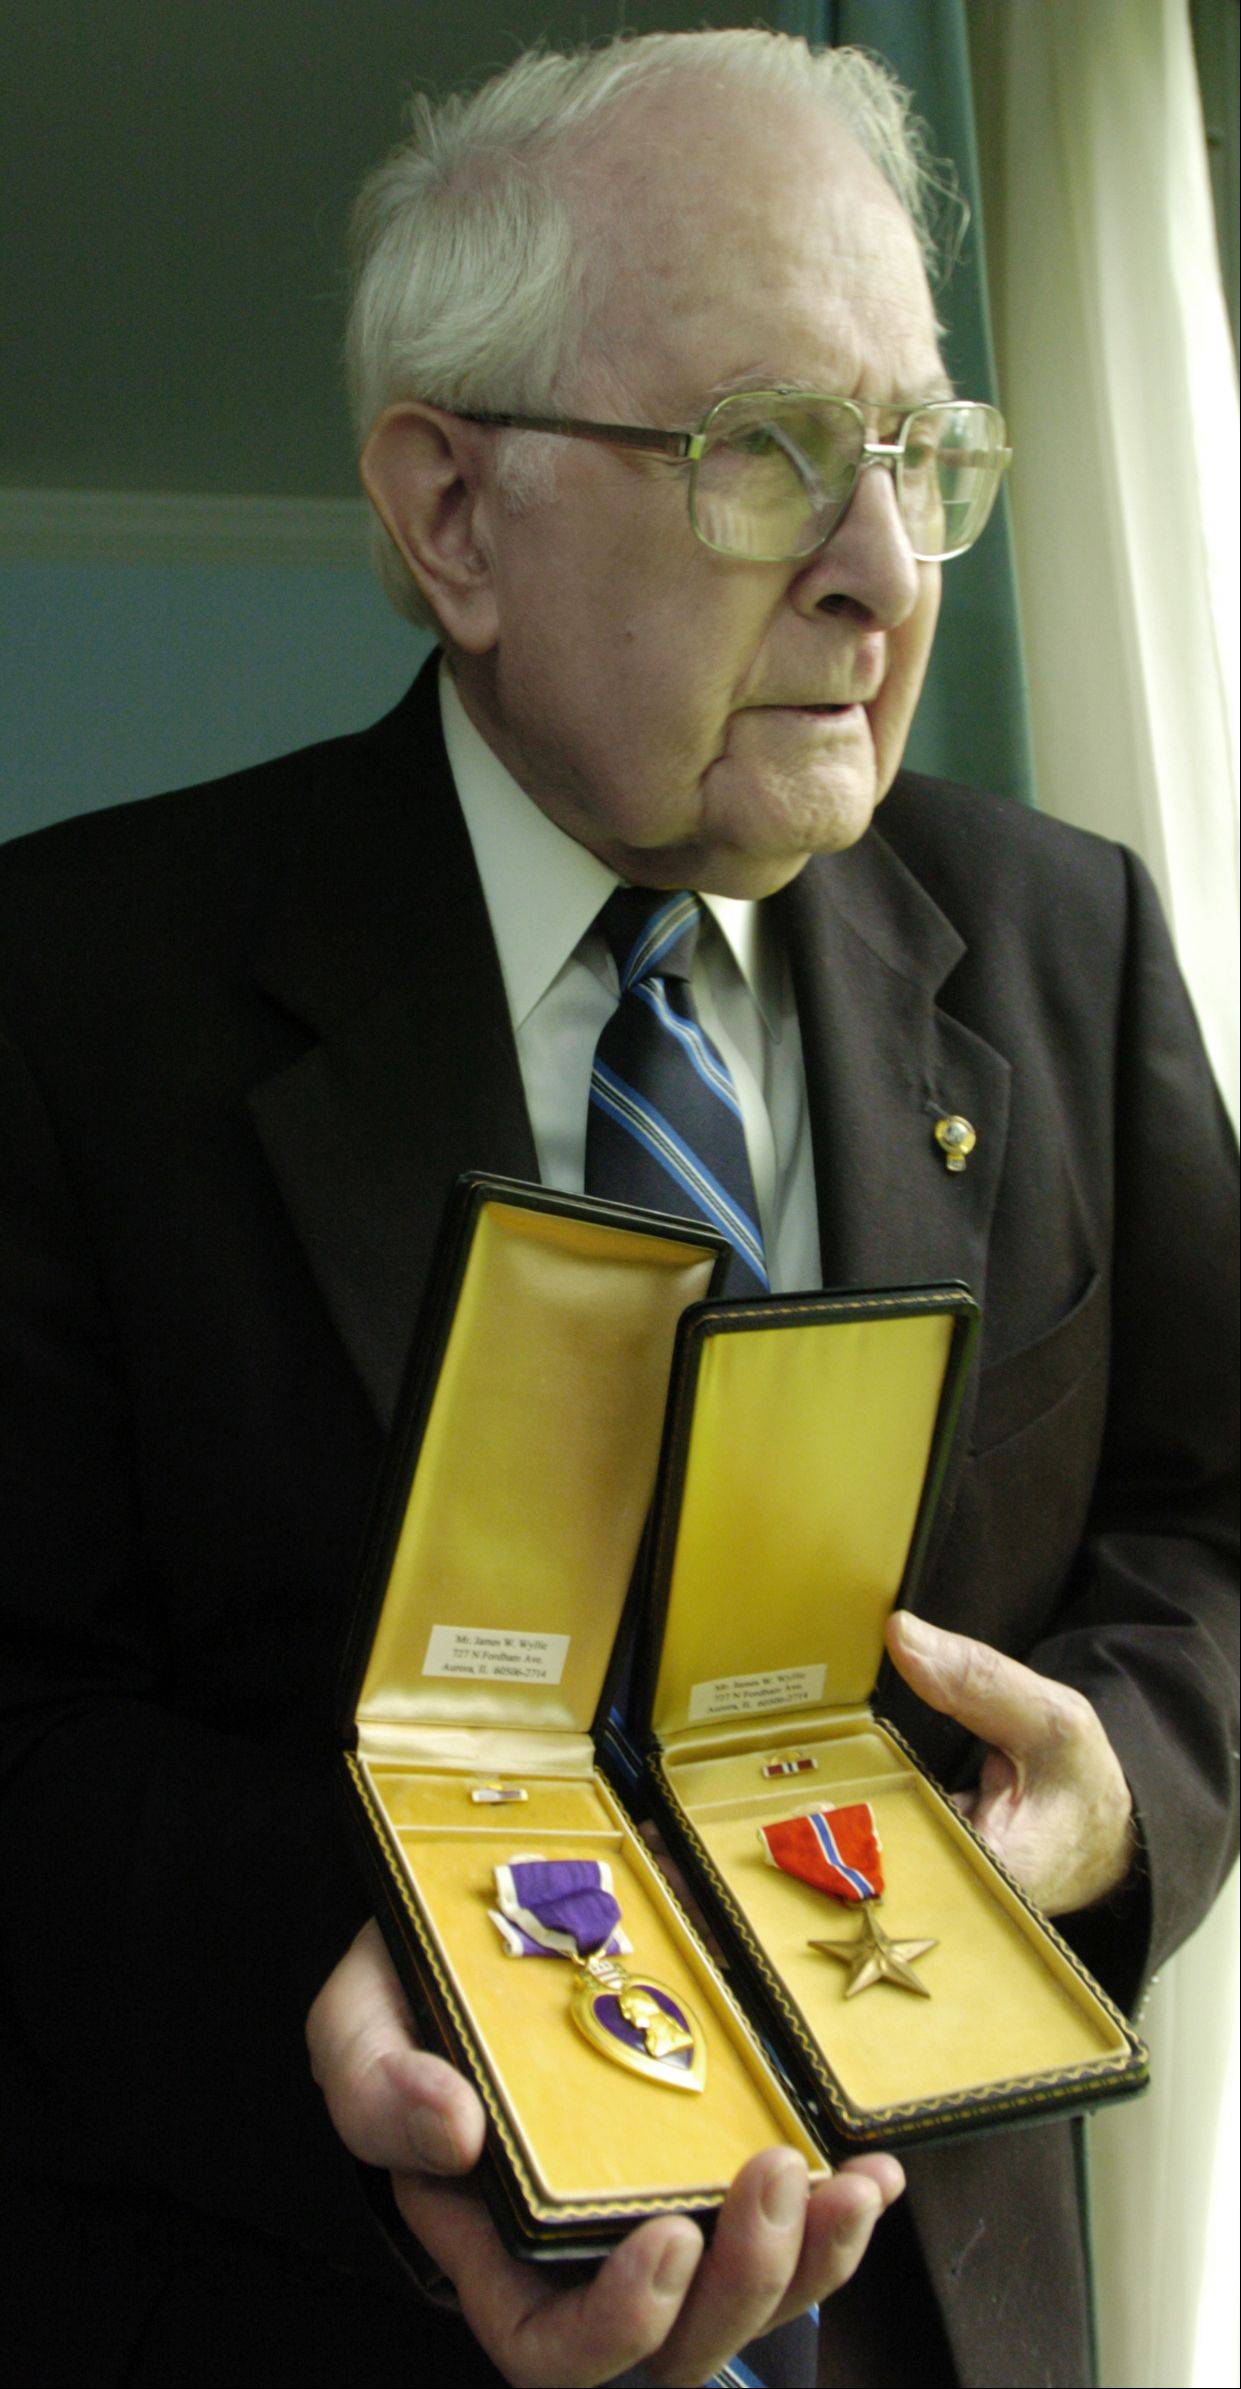 Bill Wyllie received four Purple Hearts and a Bronze Star while serving in the Army in World War II and the Korean War.